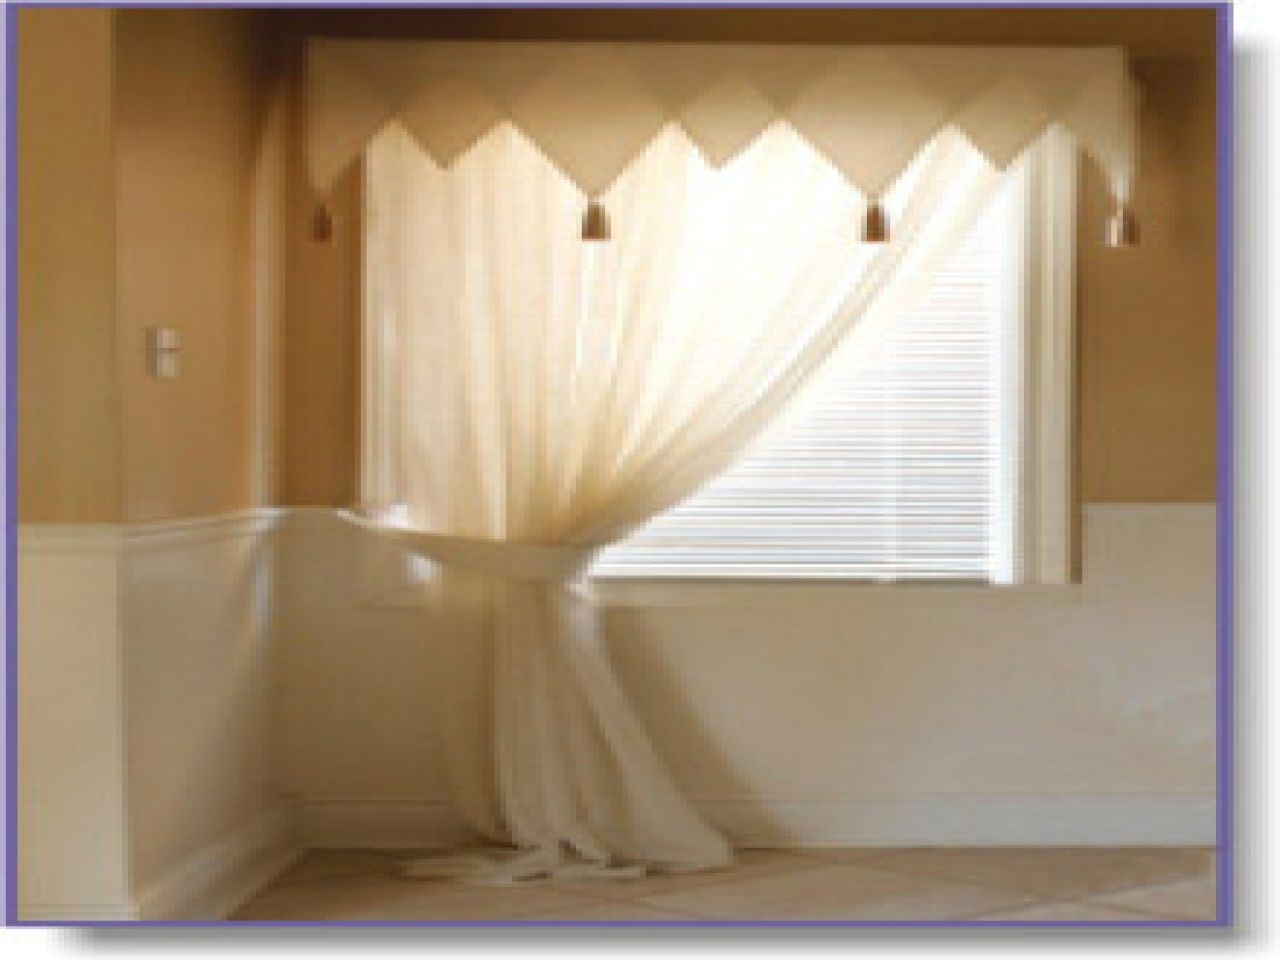 Small Bathroom Window Curtains Small Bathroom Curtain Ideas Simple Small Curtain For Bathroom Window Design Ideas